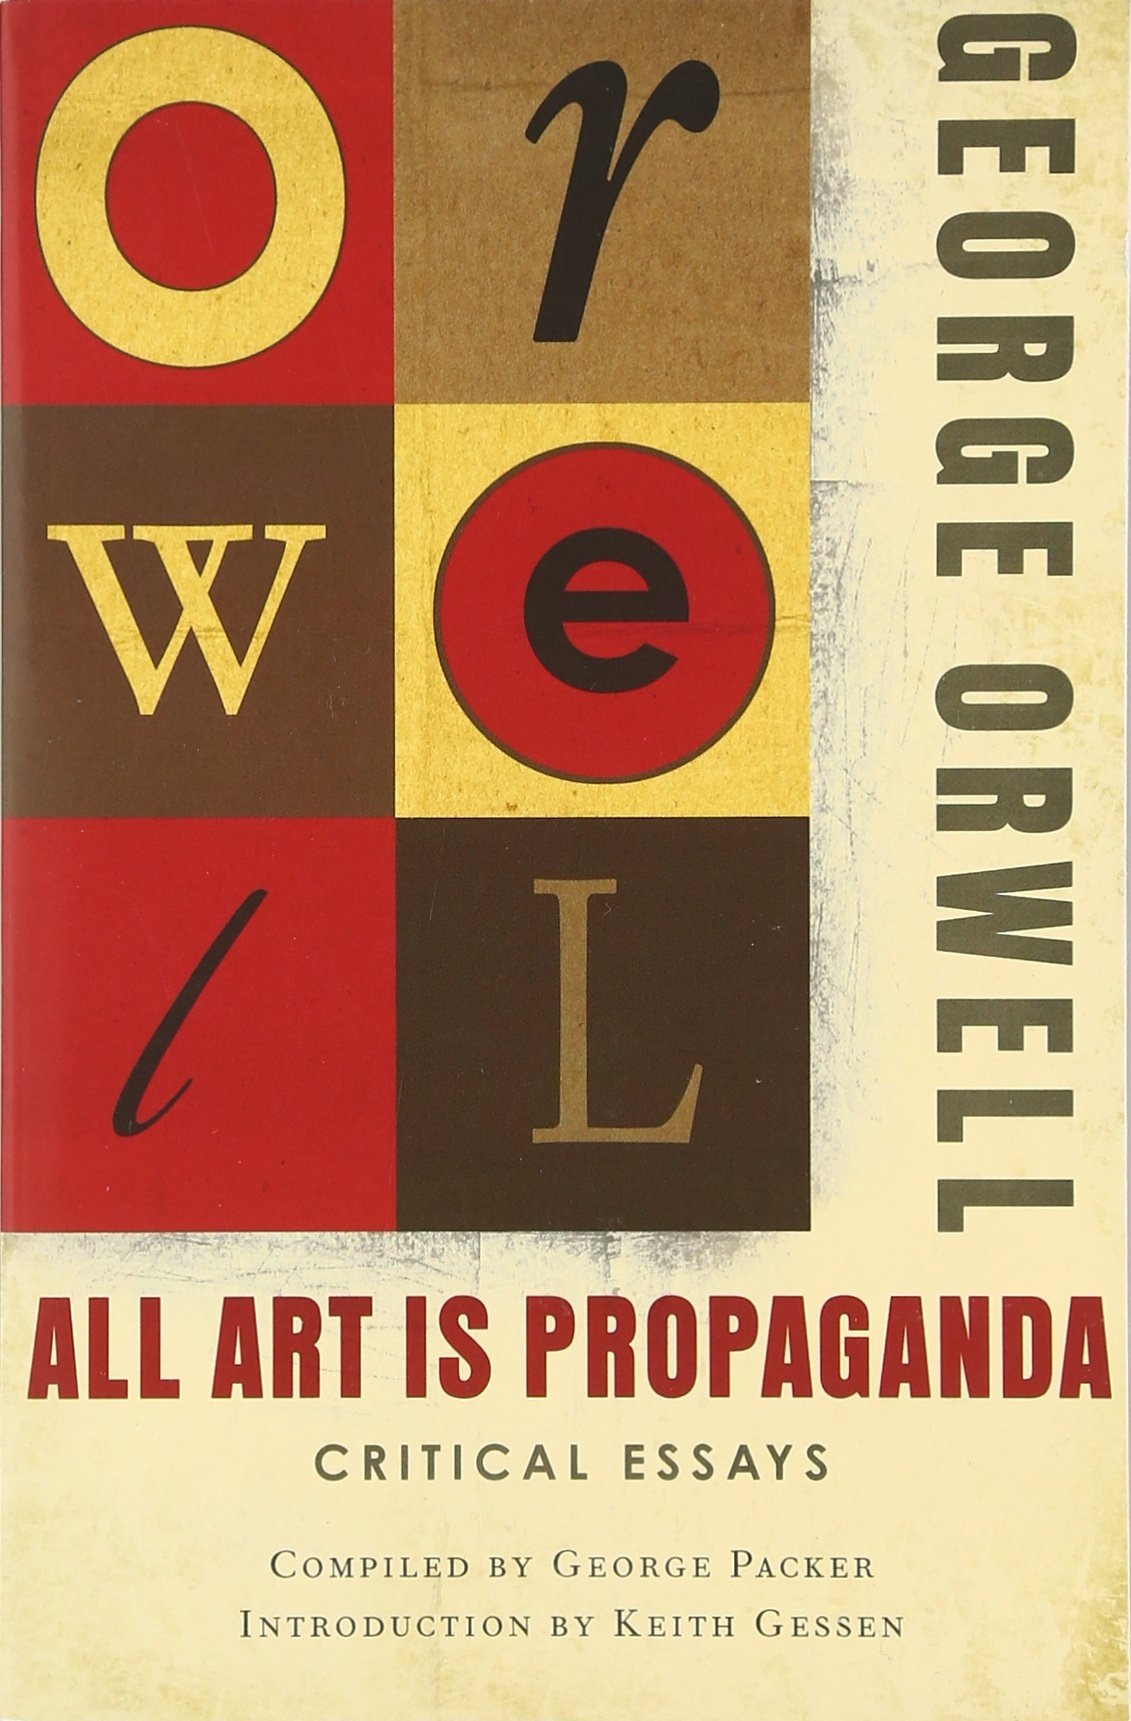 all art is propaganda critical essays george orwell all art is propaganda critical essays george orwell 9780156033077 english literature